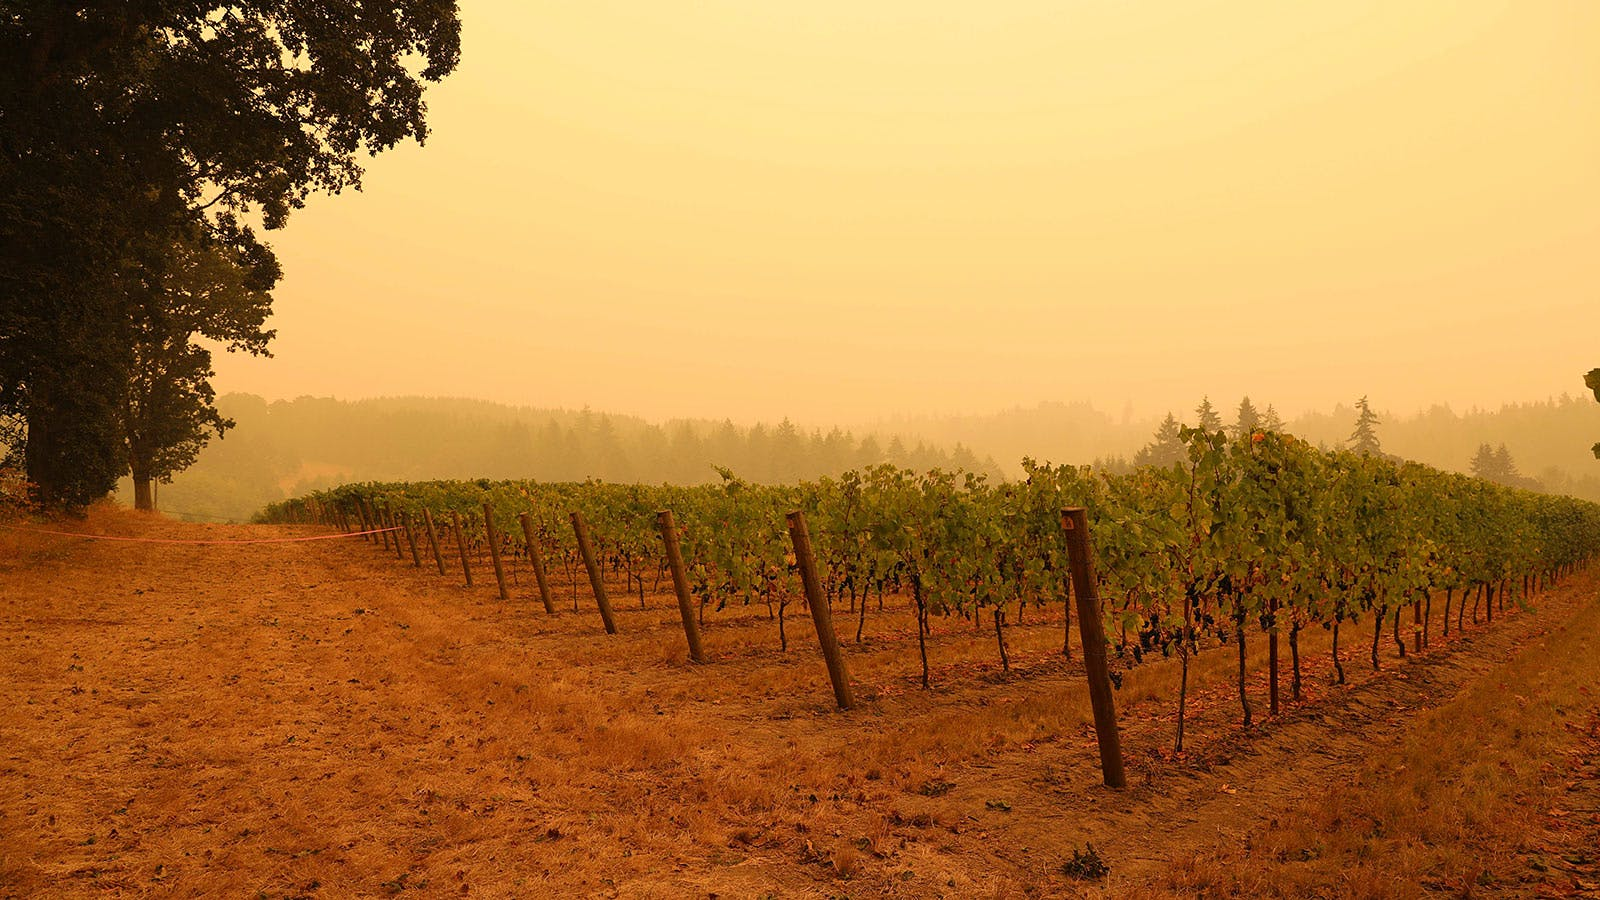 Wildfires, Smoke, and the 2020 Vintage